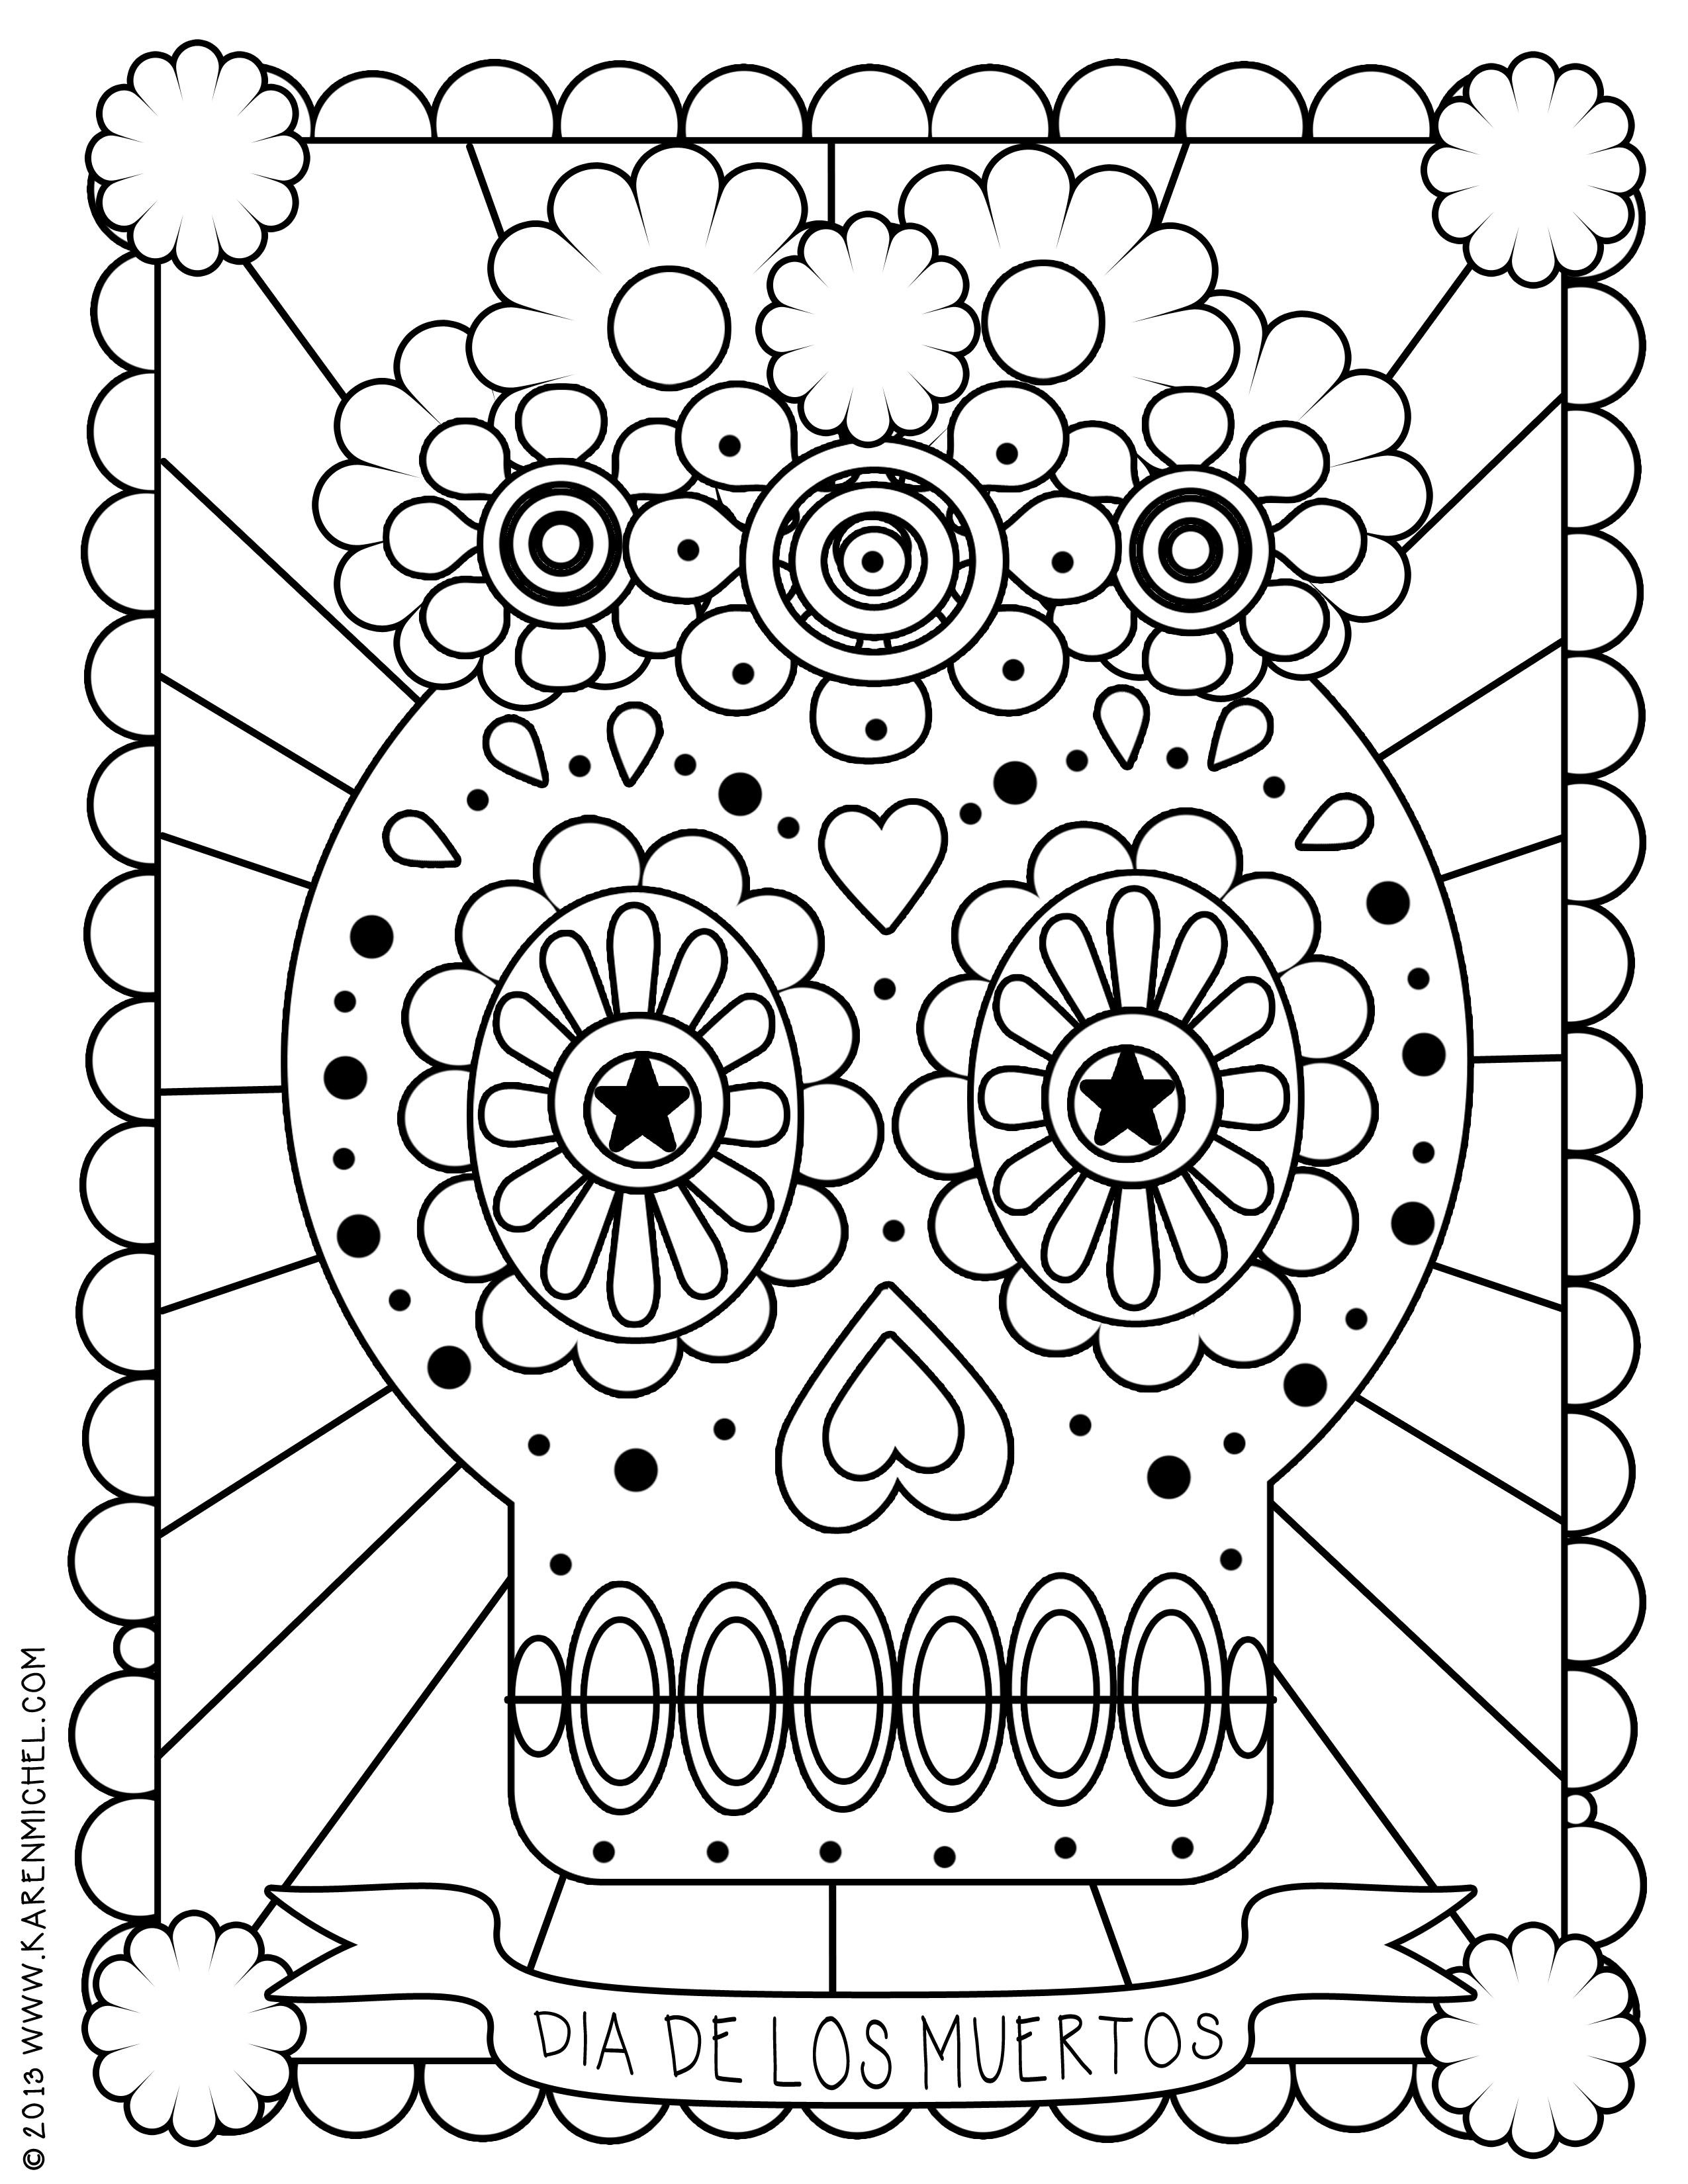 Calavera coloring page | Day of the Dead | Pinterest | Spanisch